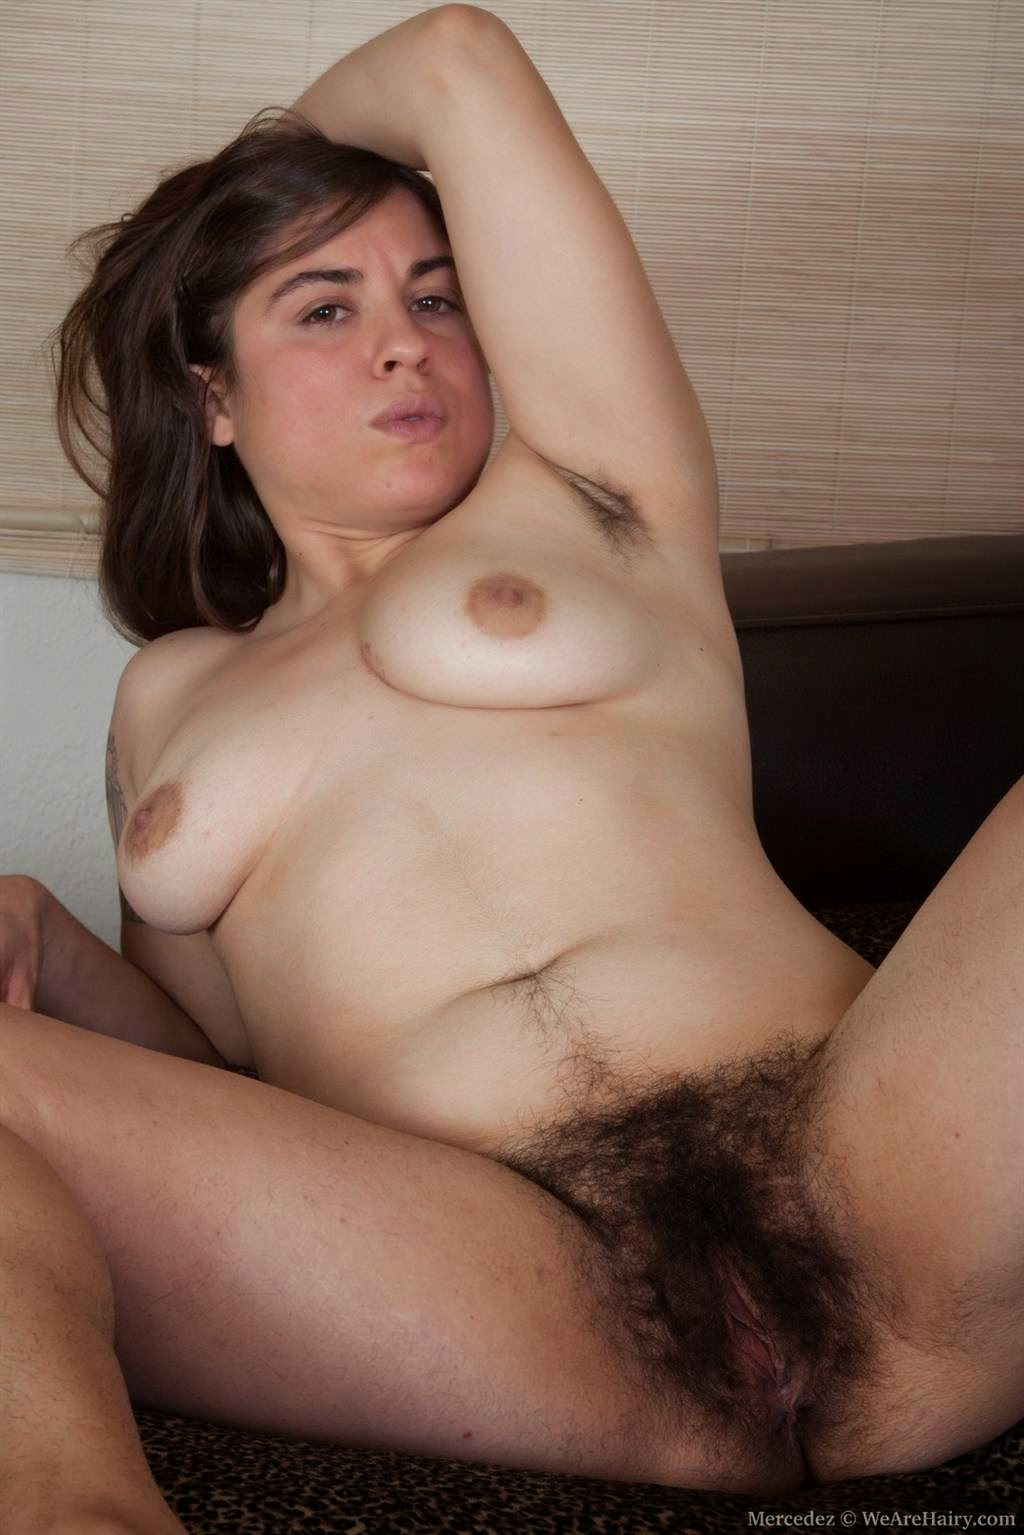 Furry full bush black cunt